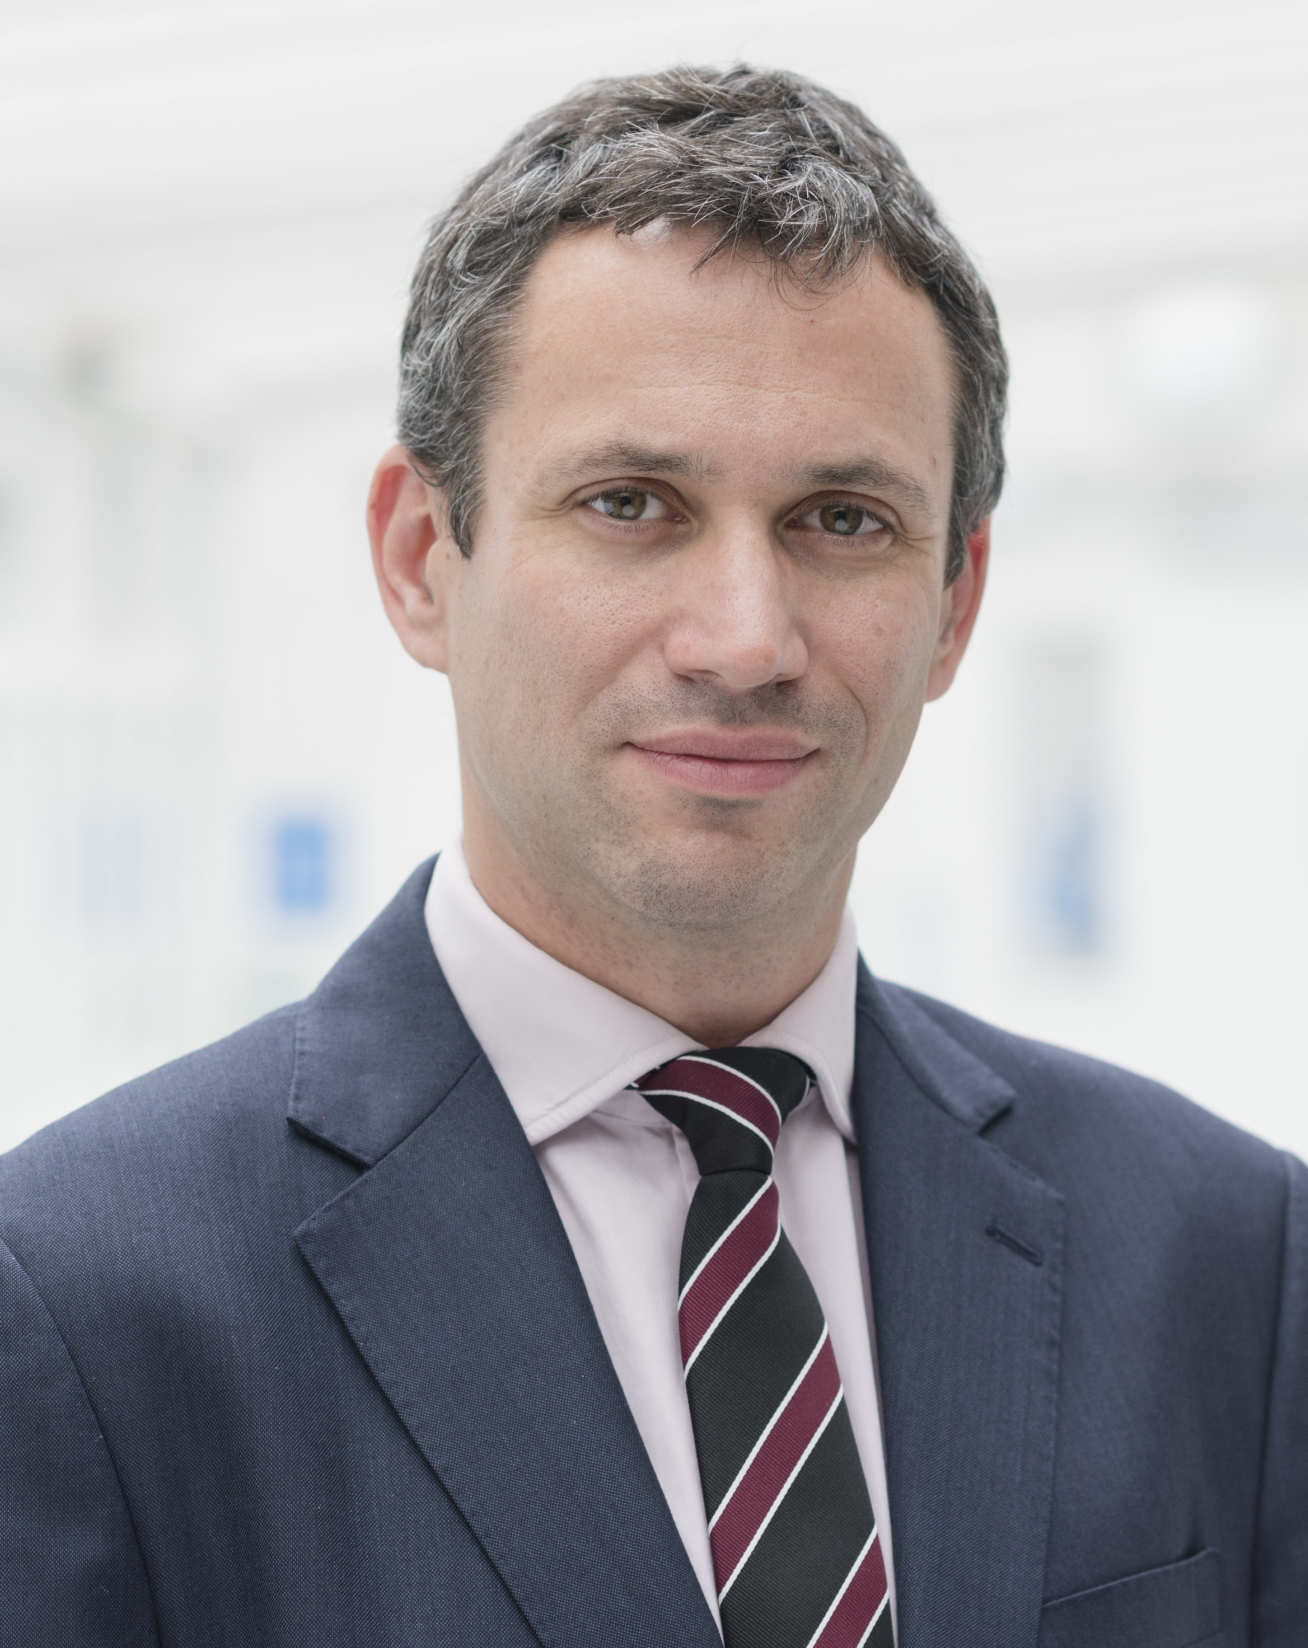 Professor Michael Loebinger, Respiratory Consultant and Clinical Director of Laboratory Medicine at Royal Brompton Hospital